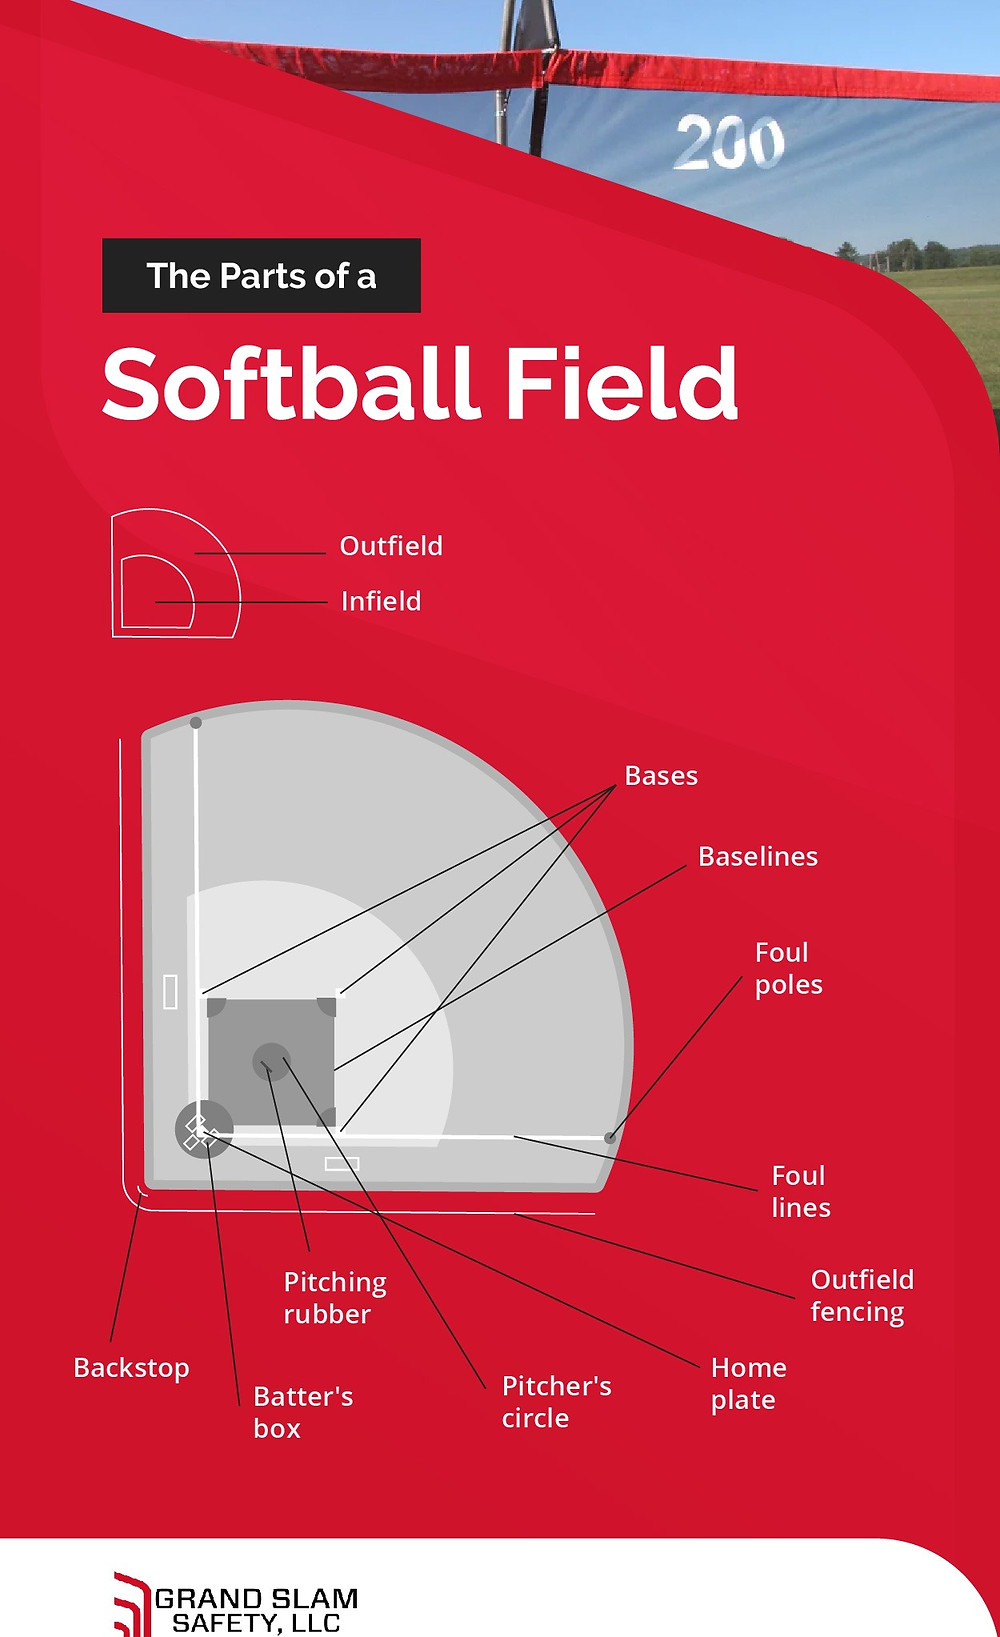 All the essential parts of a softball field